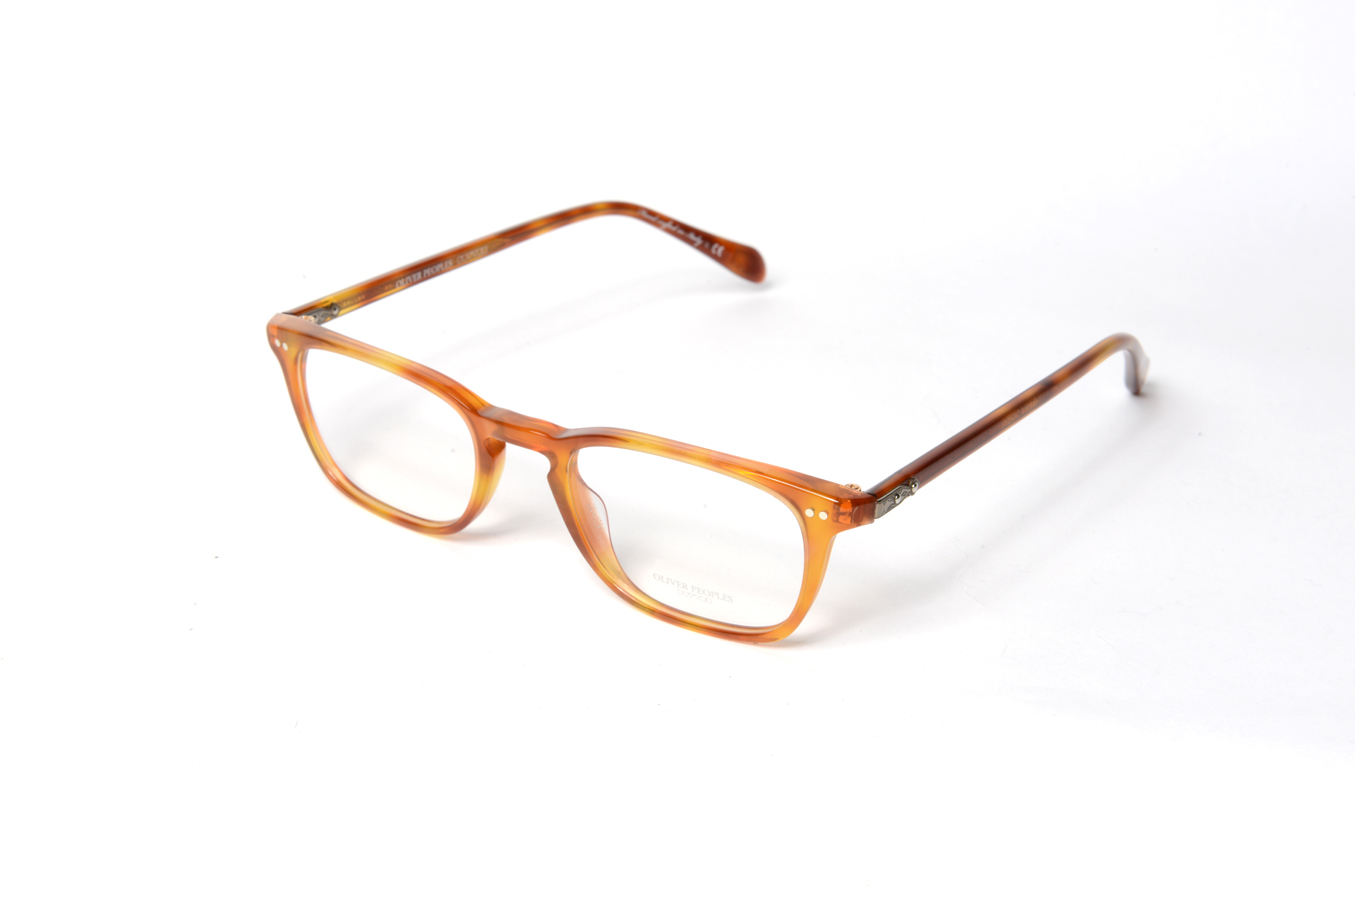 c781d9ecd68f3 Oliver Peoples Sir Kent - Piccadilly Opticians -